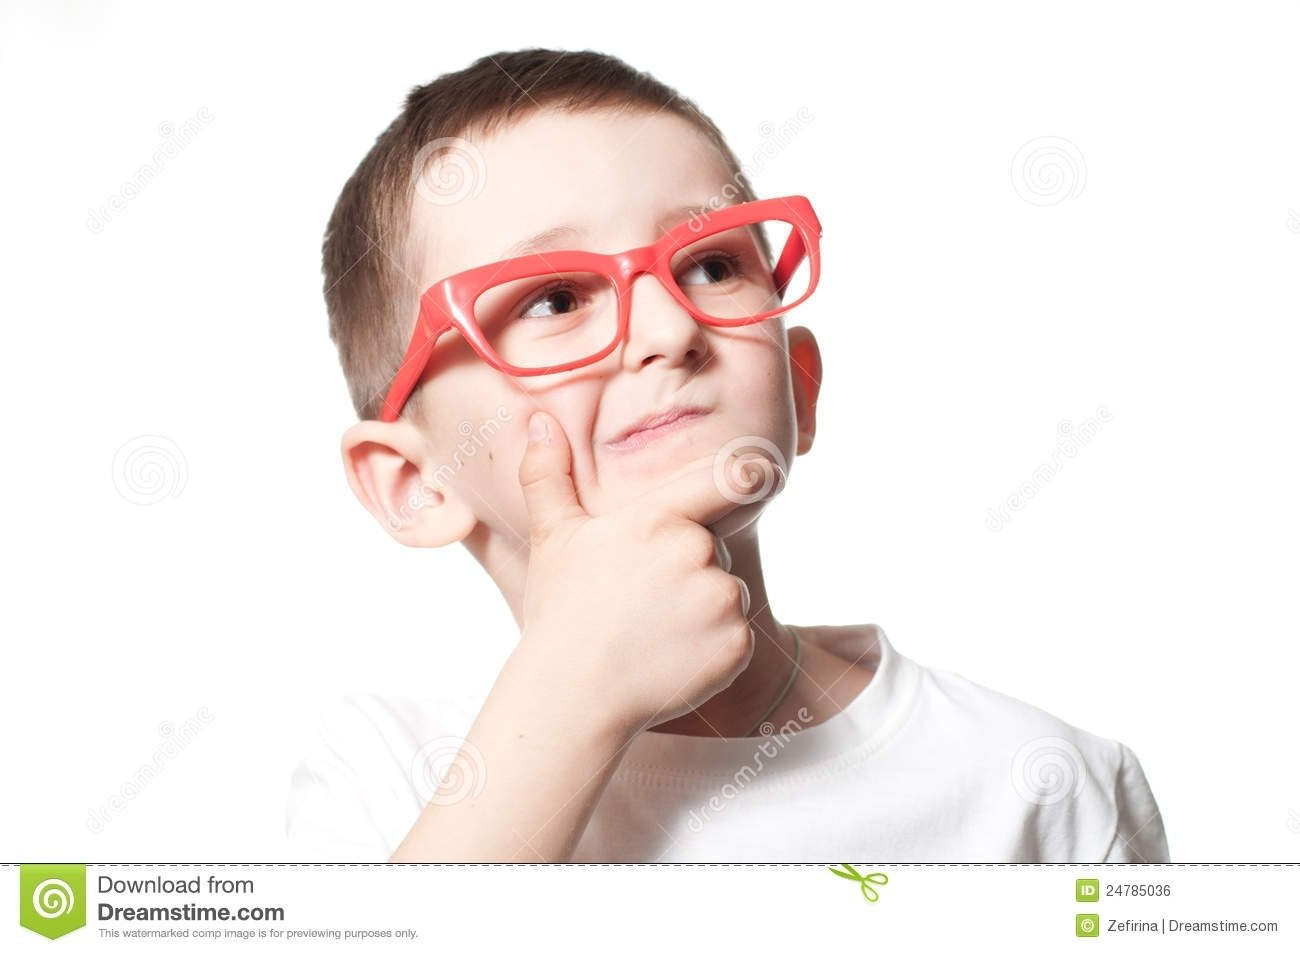 10 Great I Have A Great Idea i have an good idea stock photo image of gesture symbol 24785036